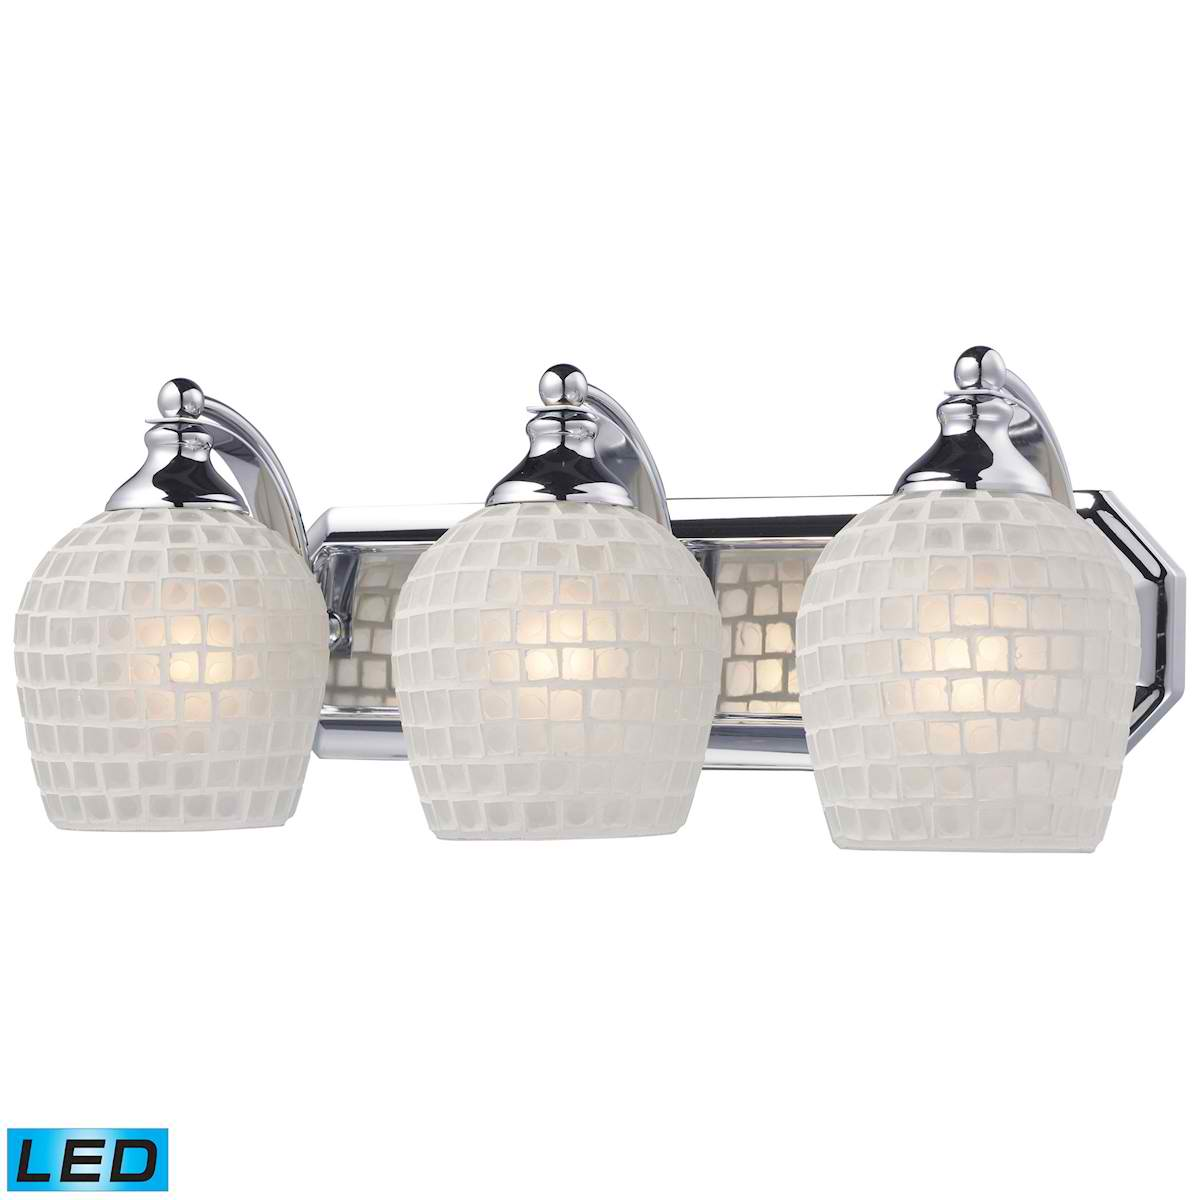 3 Light Vanity in Polished Chrome and White Mosaic Glass - LED, 800 Lumens (2400 Lumens Total) With Full Scale